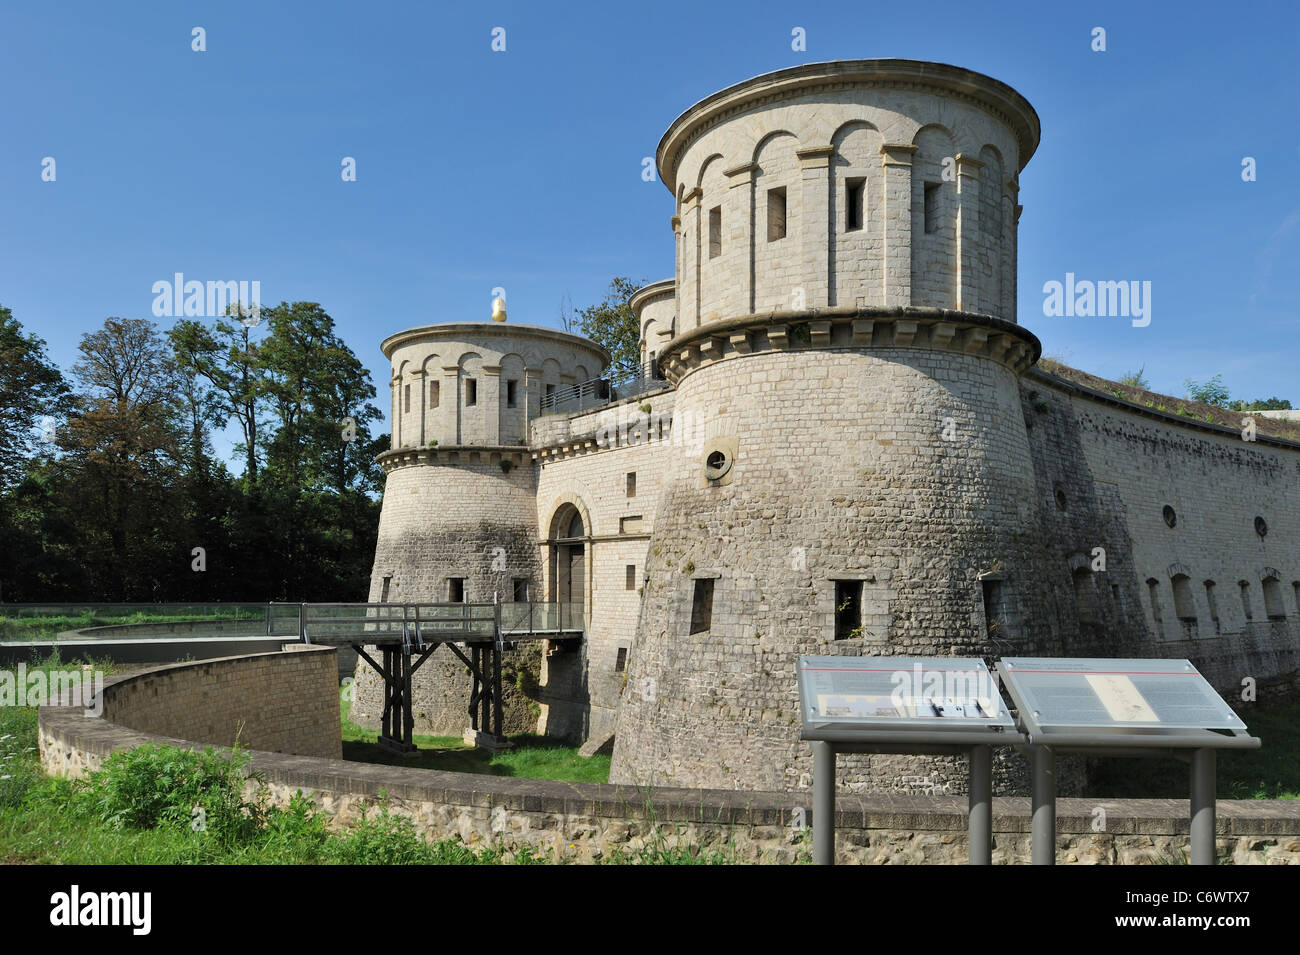 Ancient fortress Vauban / Fort Thüngen at Kirchberg, Luxembourg - Stock Image